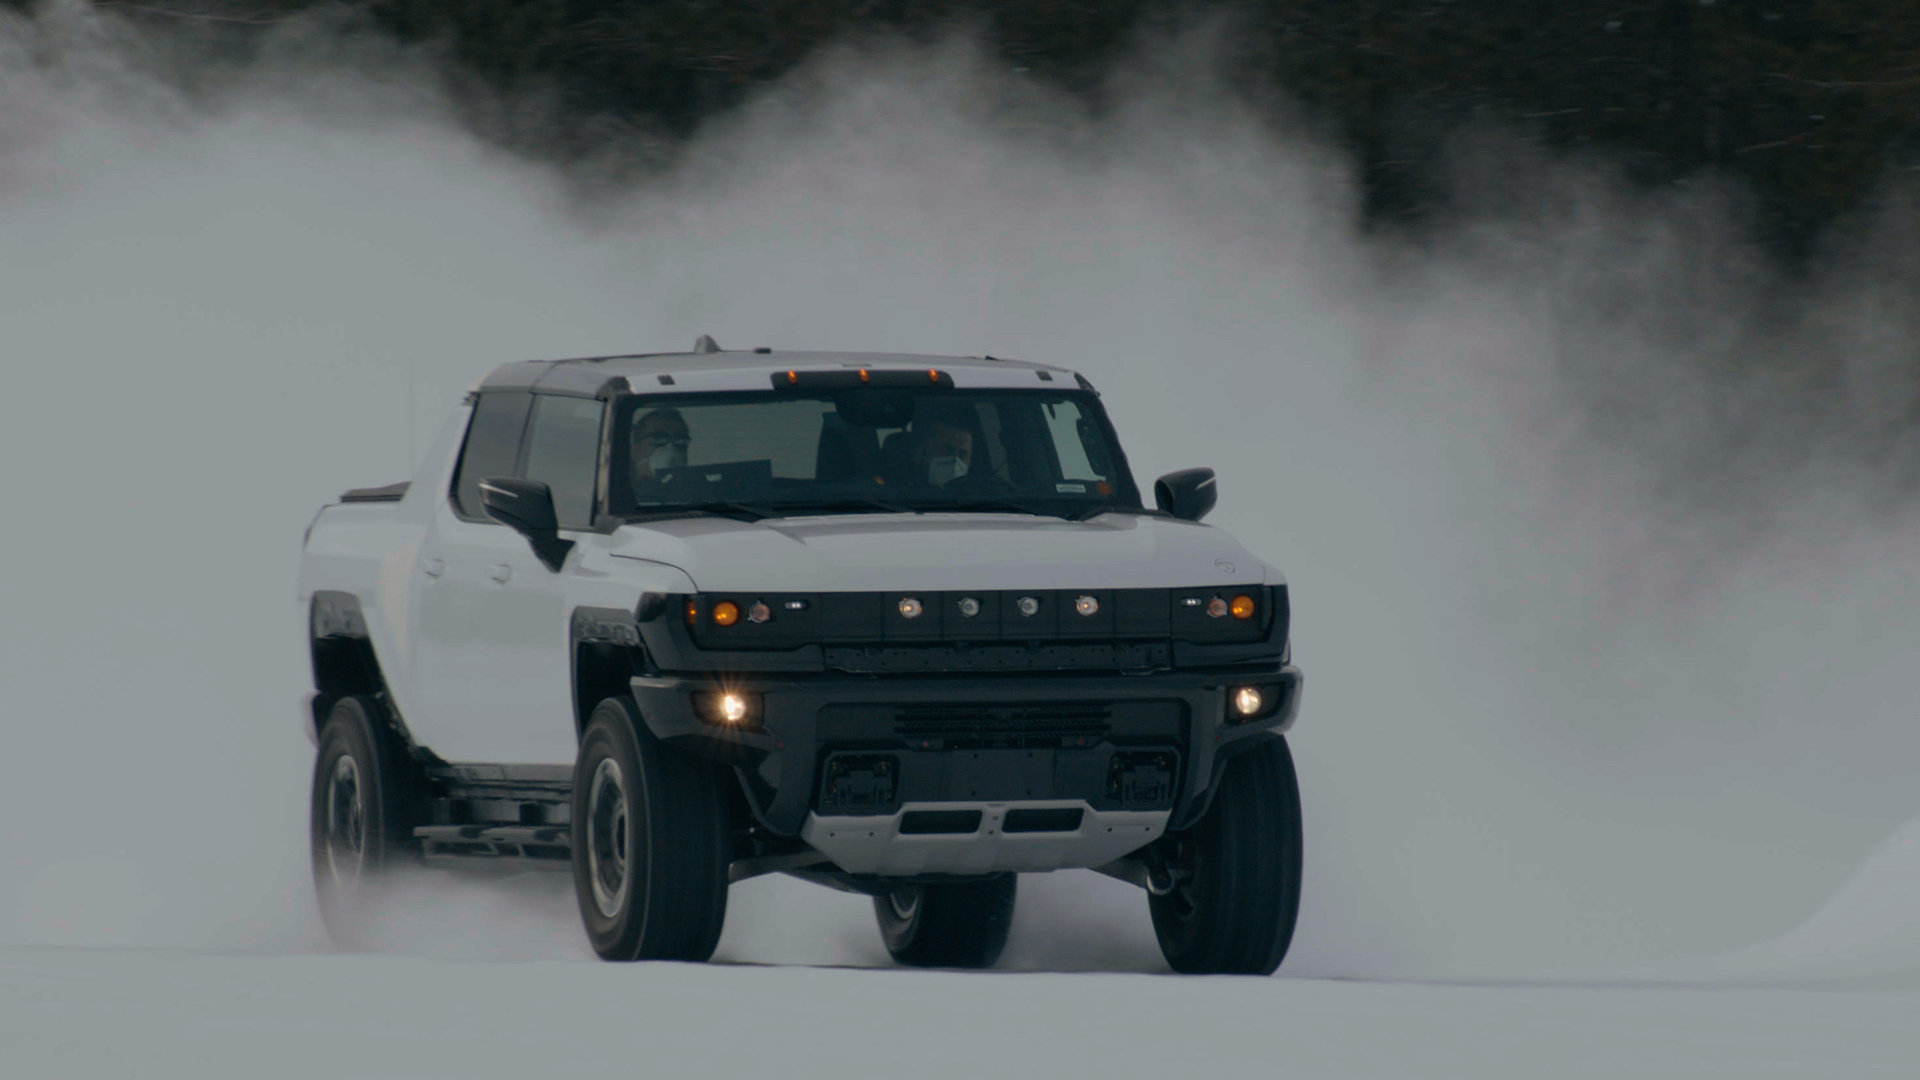 Follow the GMC HUMMER EV on its testing and development journey